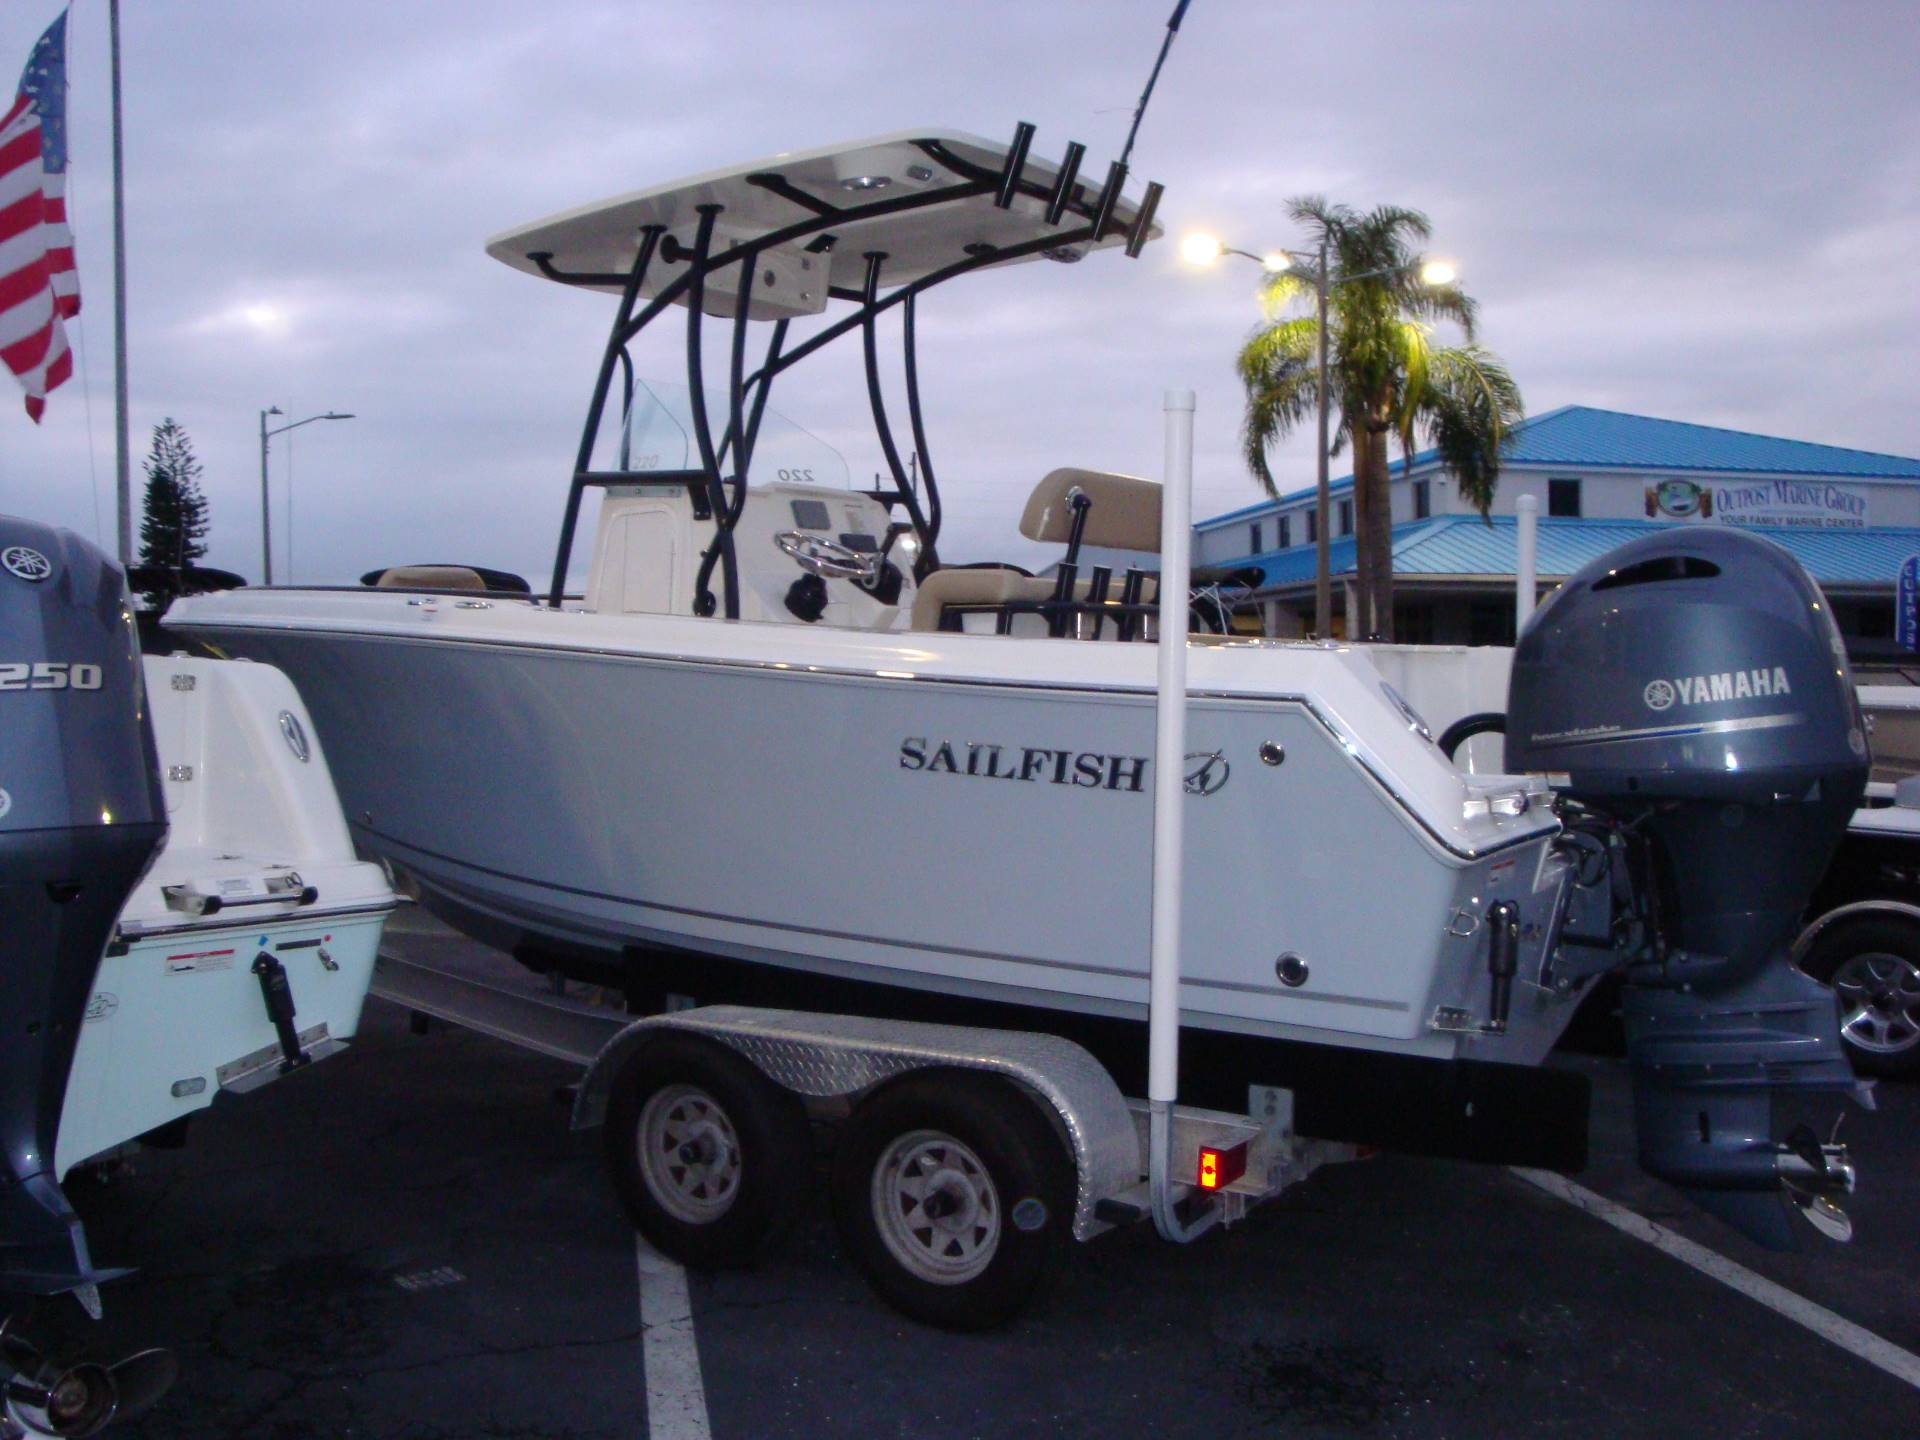 2019 Sailfish 220 CC in Holiday, Florida